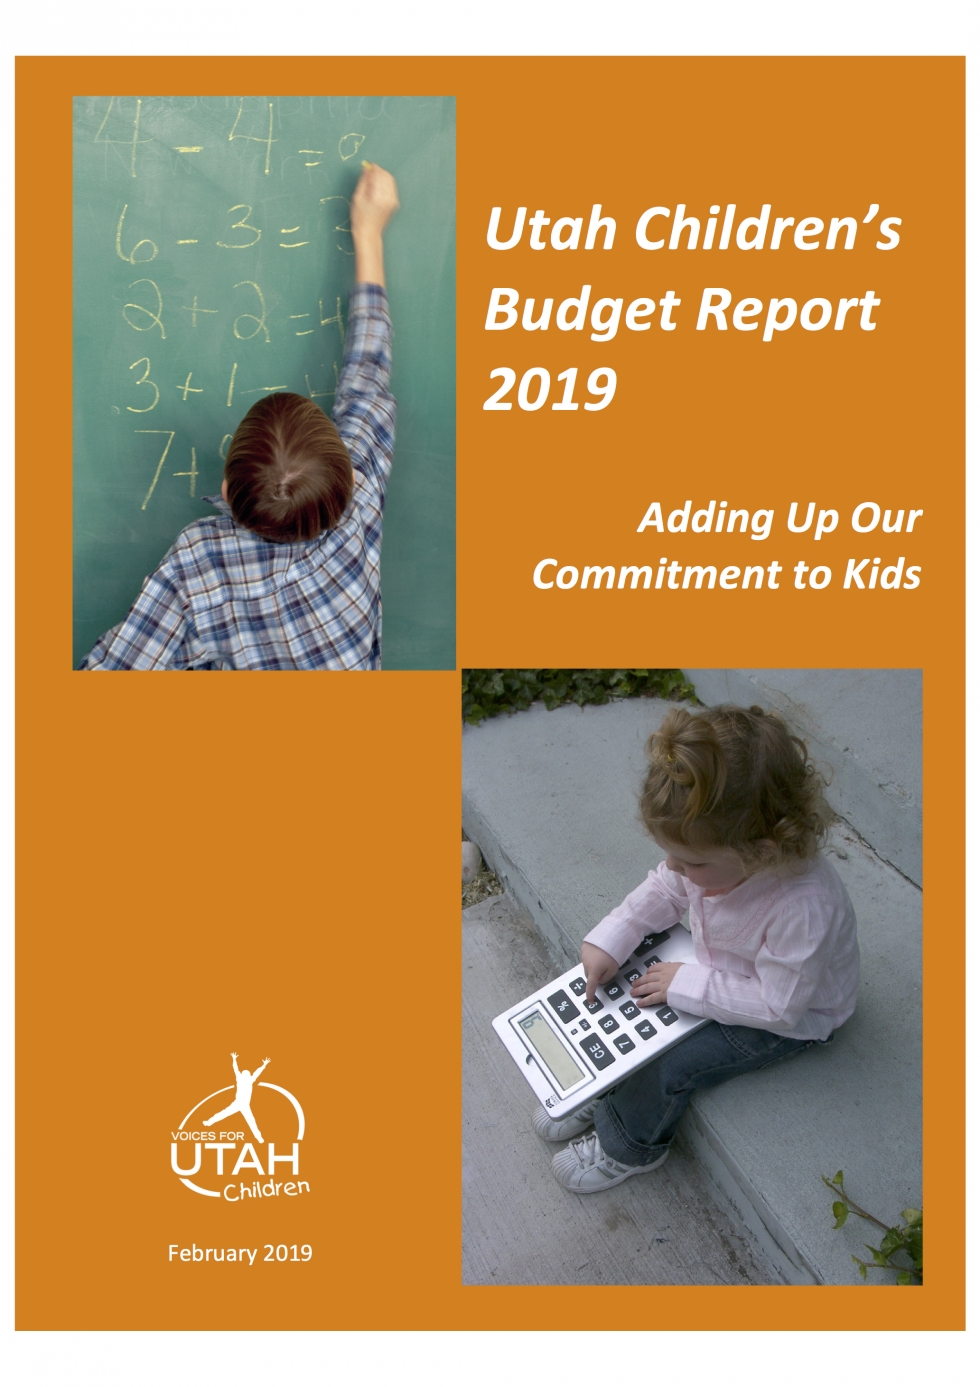 Utah Children's Budget Report 2019